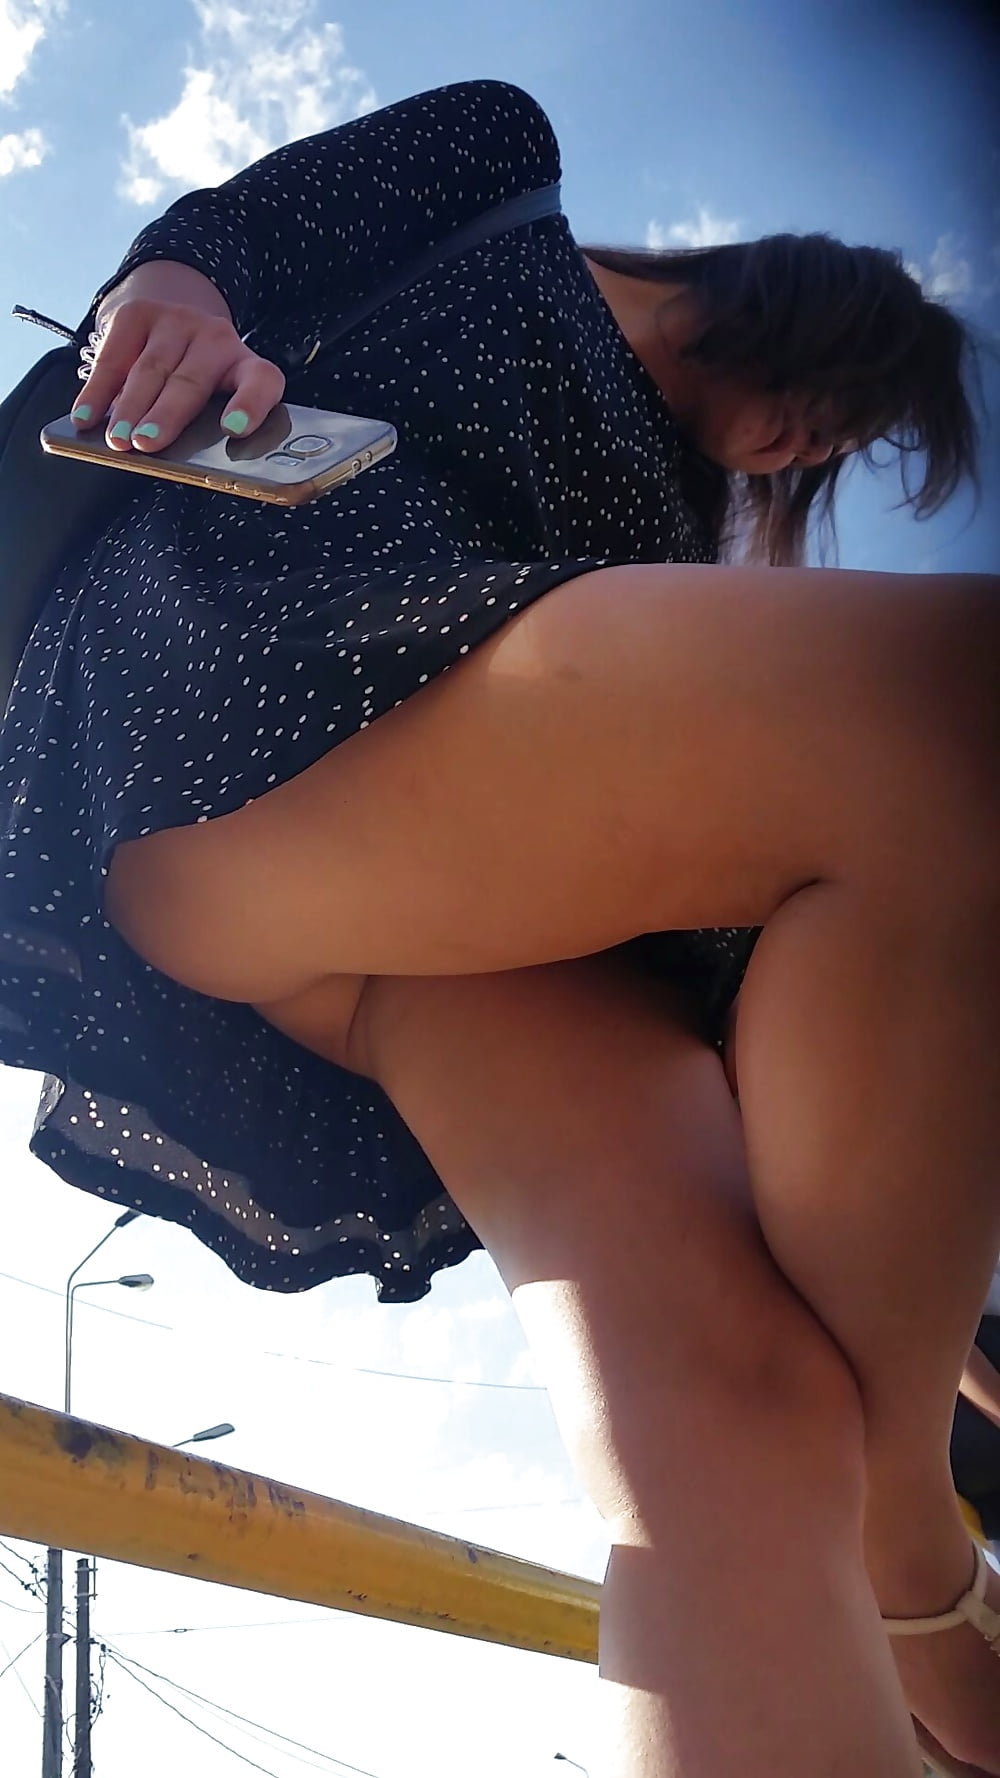 upskirt-spy-movie-gallery